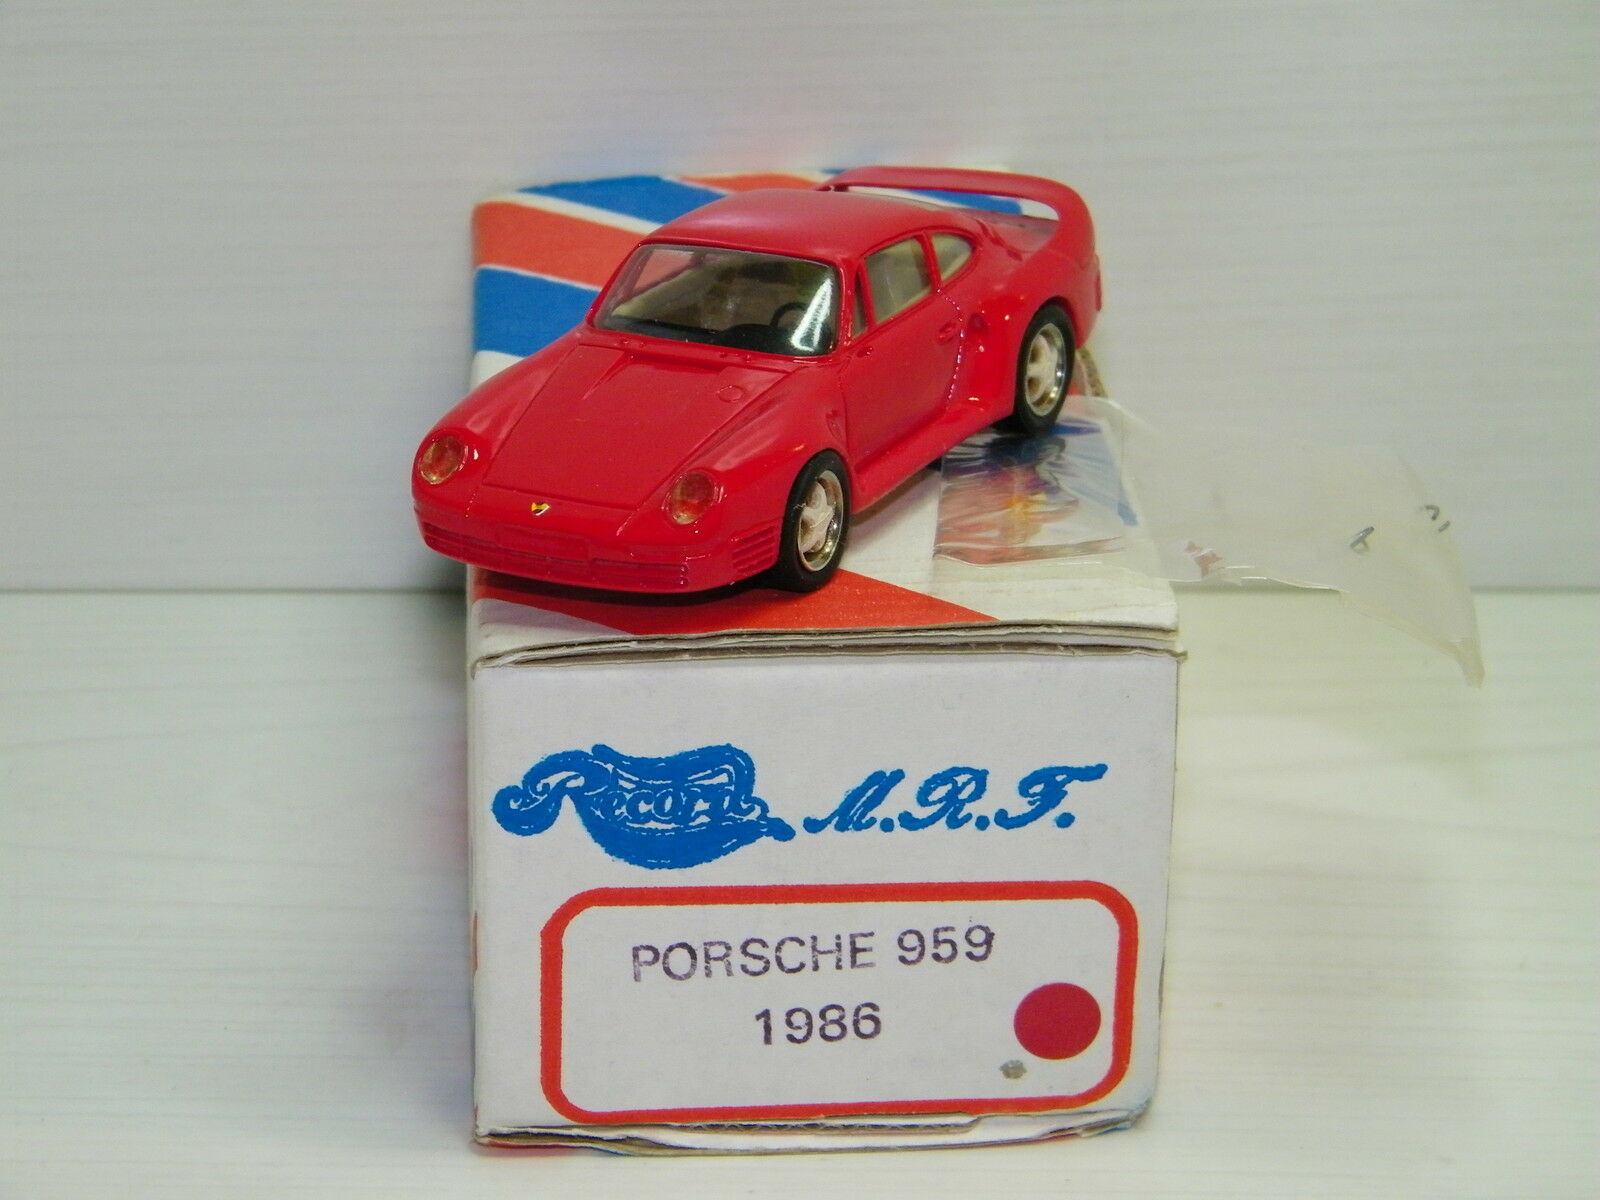 KIT RECORD - - - PORSCHE 959 1986 ROUGE 05df7b